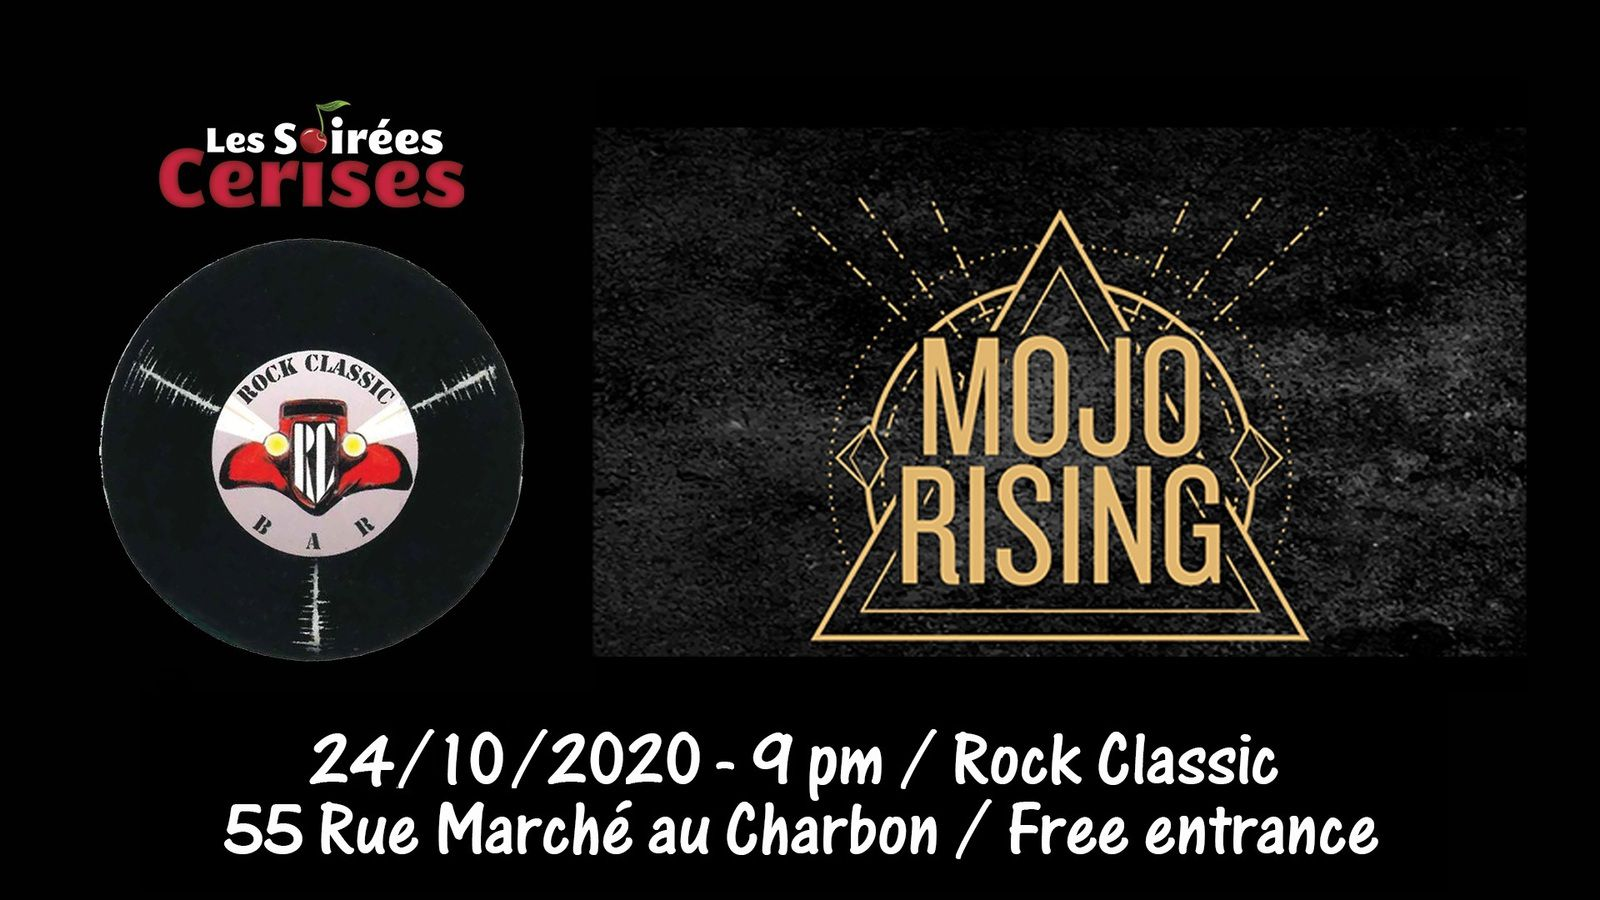 🎵 Mojo Rising (ex-This is Marylyn) @ Rock Classic - 24/10/2020 - 21h00 - Entrée gratuite / Free entrance